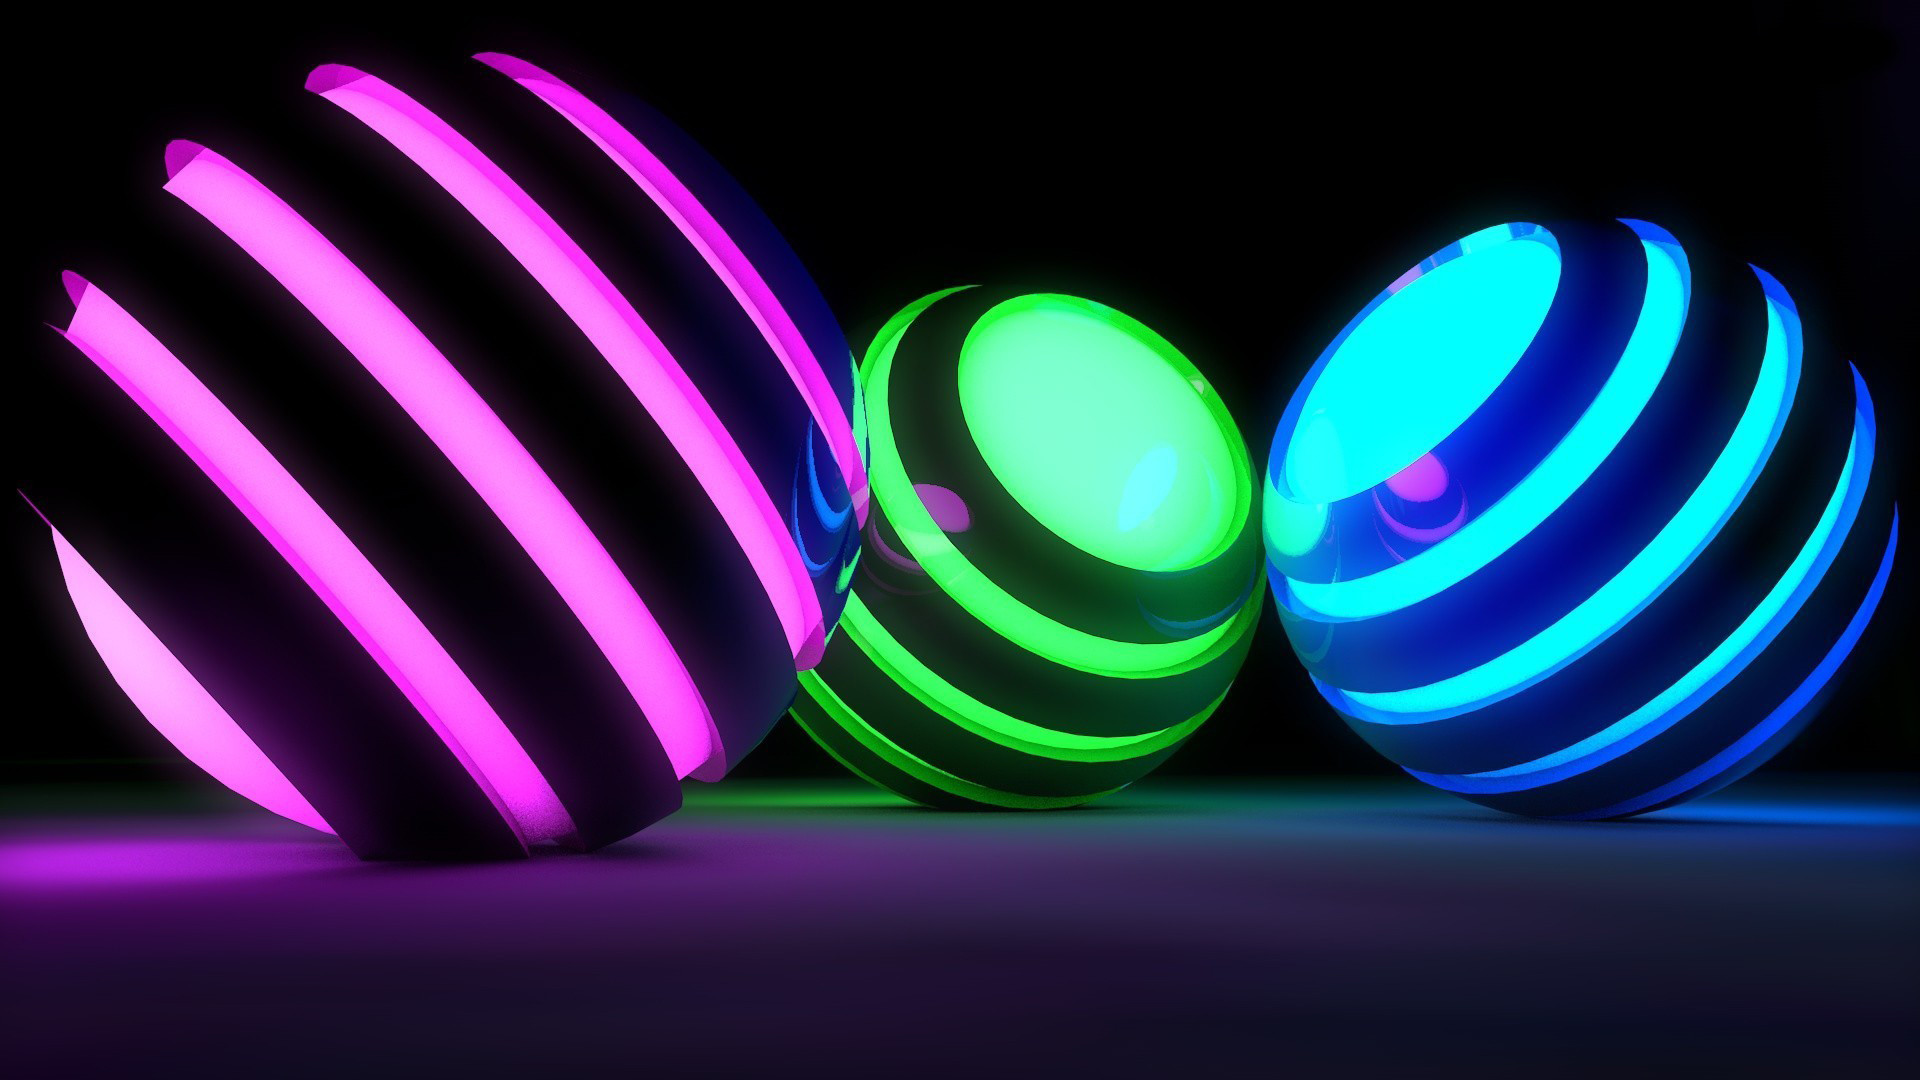 Res: 1920x1080, Cool Neon Blue Desktop Wallpaper With High Resolution Widescreen Best  Latest In Hd For Your Of Smartphone